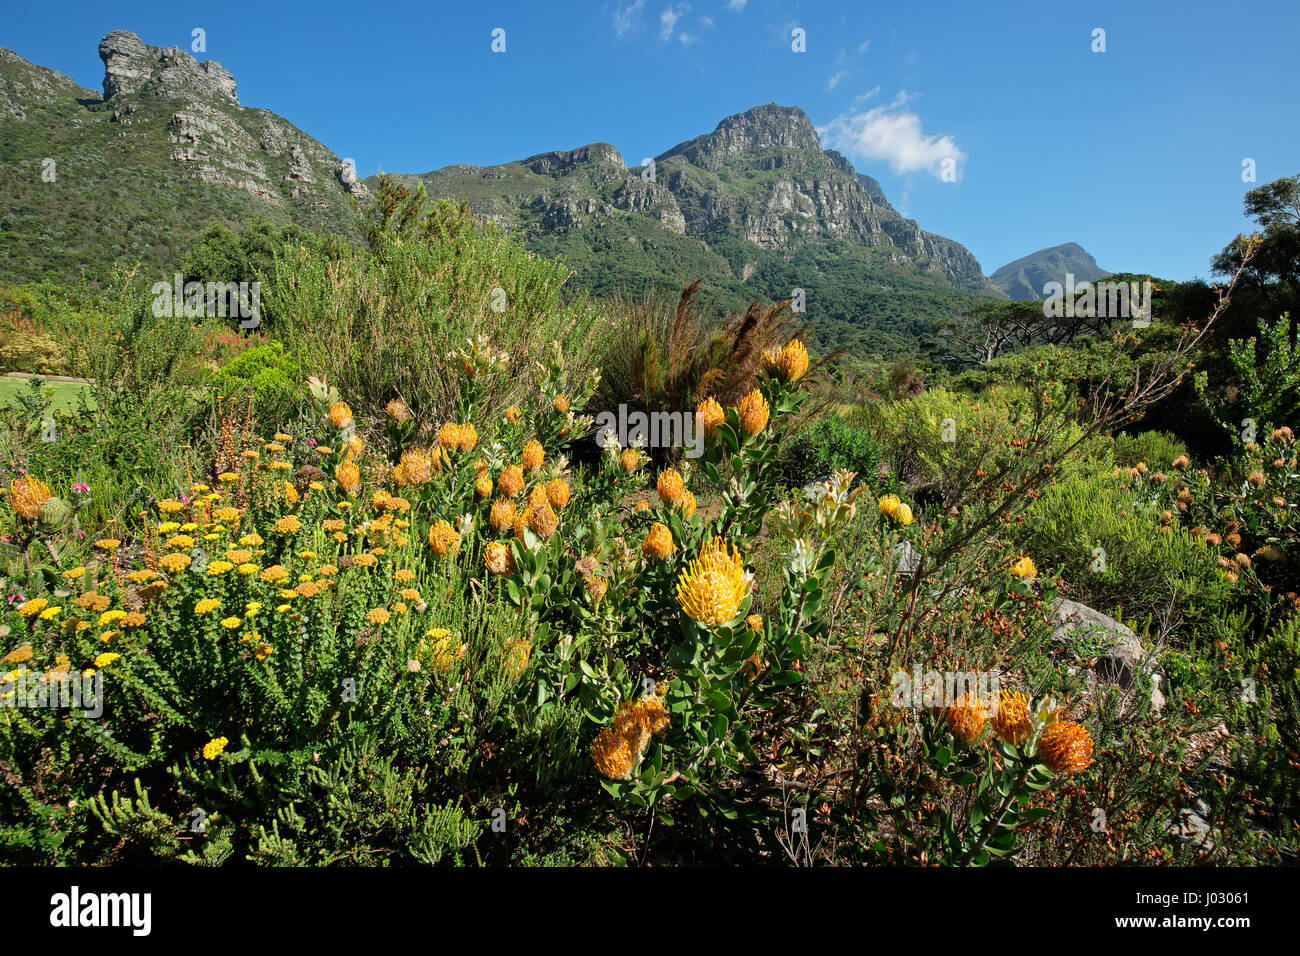 Kirstenbosch botanical gardens against the backdrop of Table mountain, Cape Town, South Africa - Stock Image